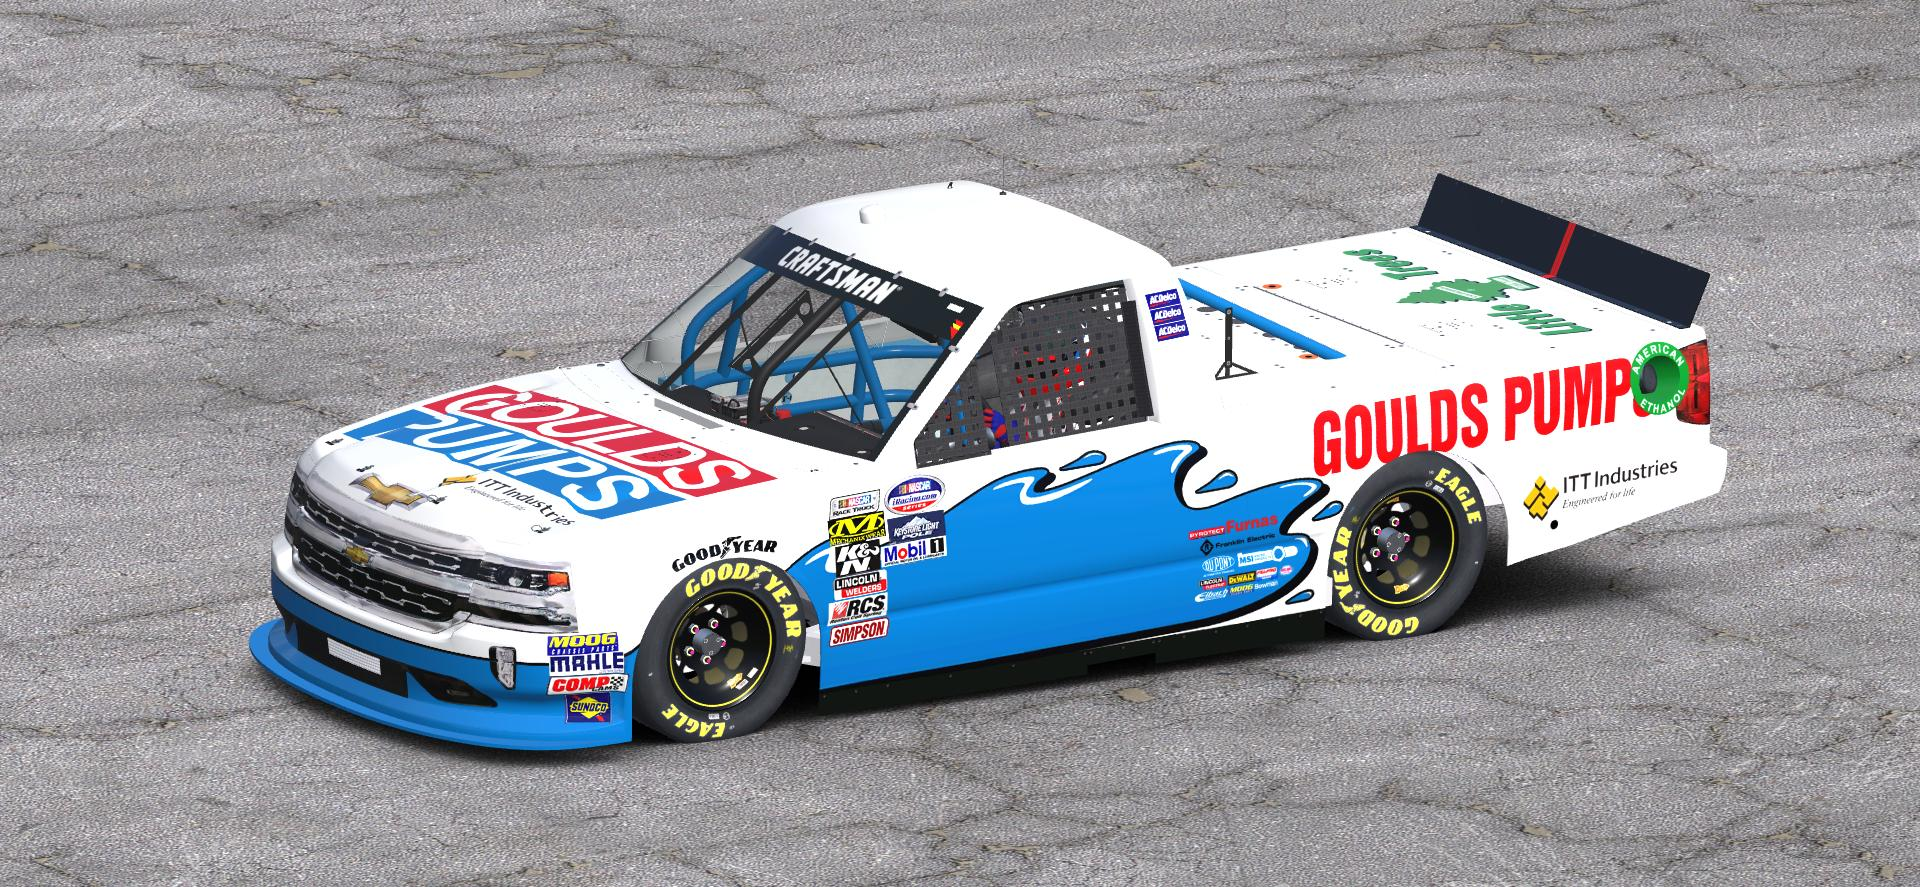 Preview of Goulds Pumps Chevrolet Silverado by Matthew Wood